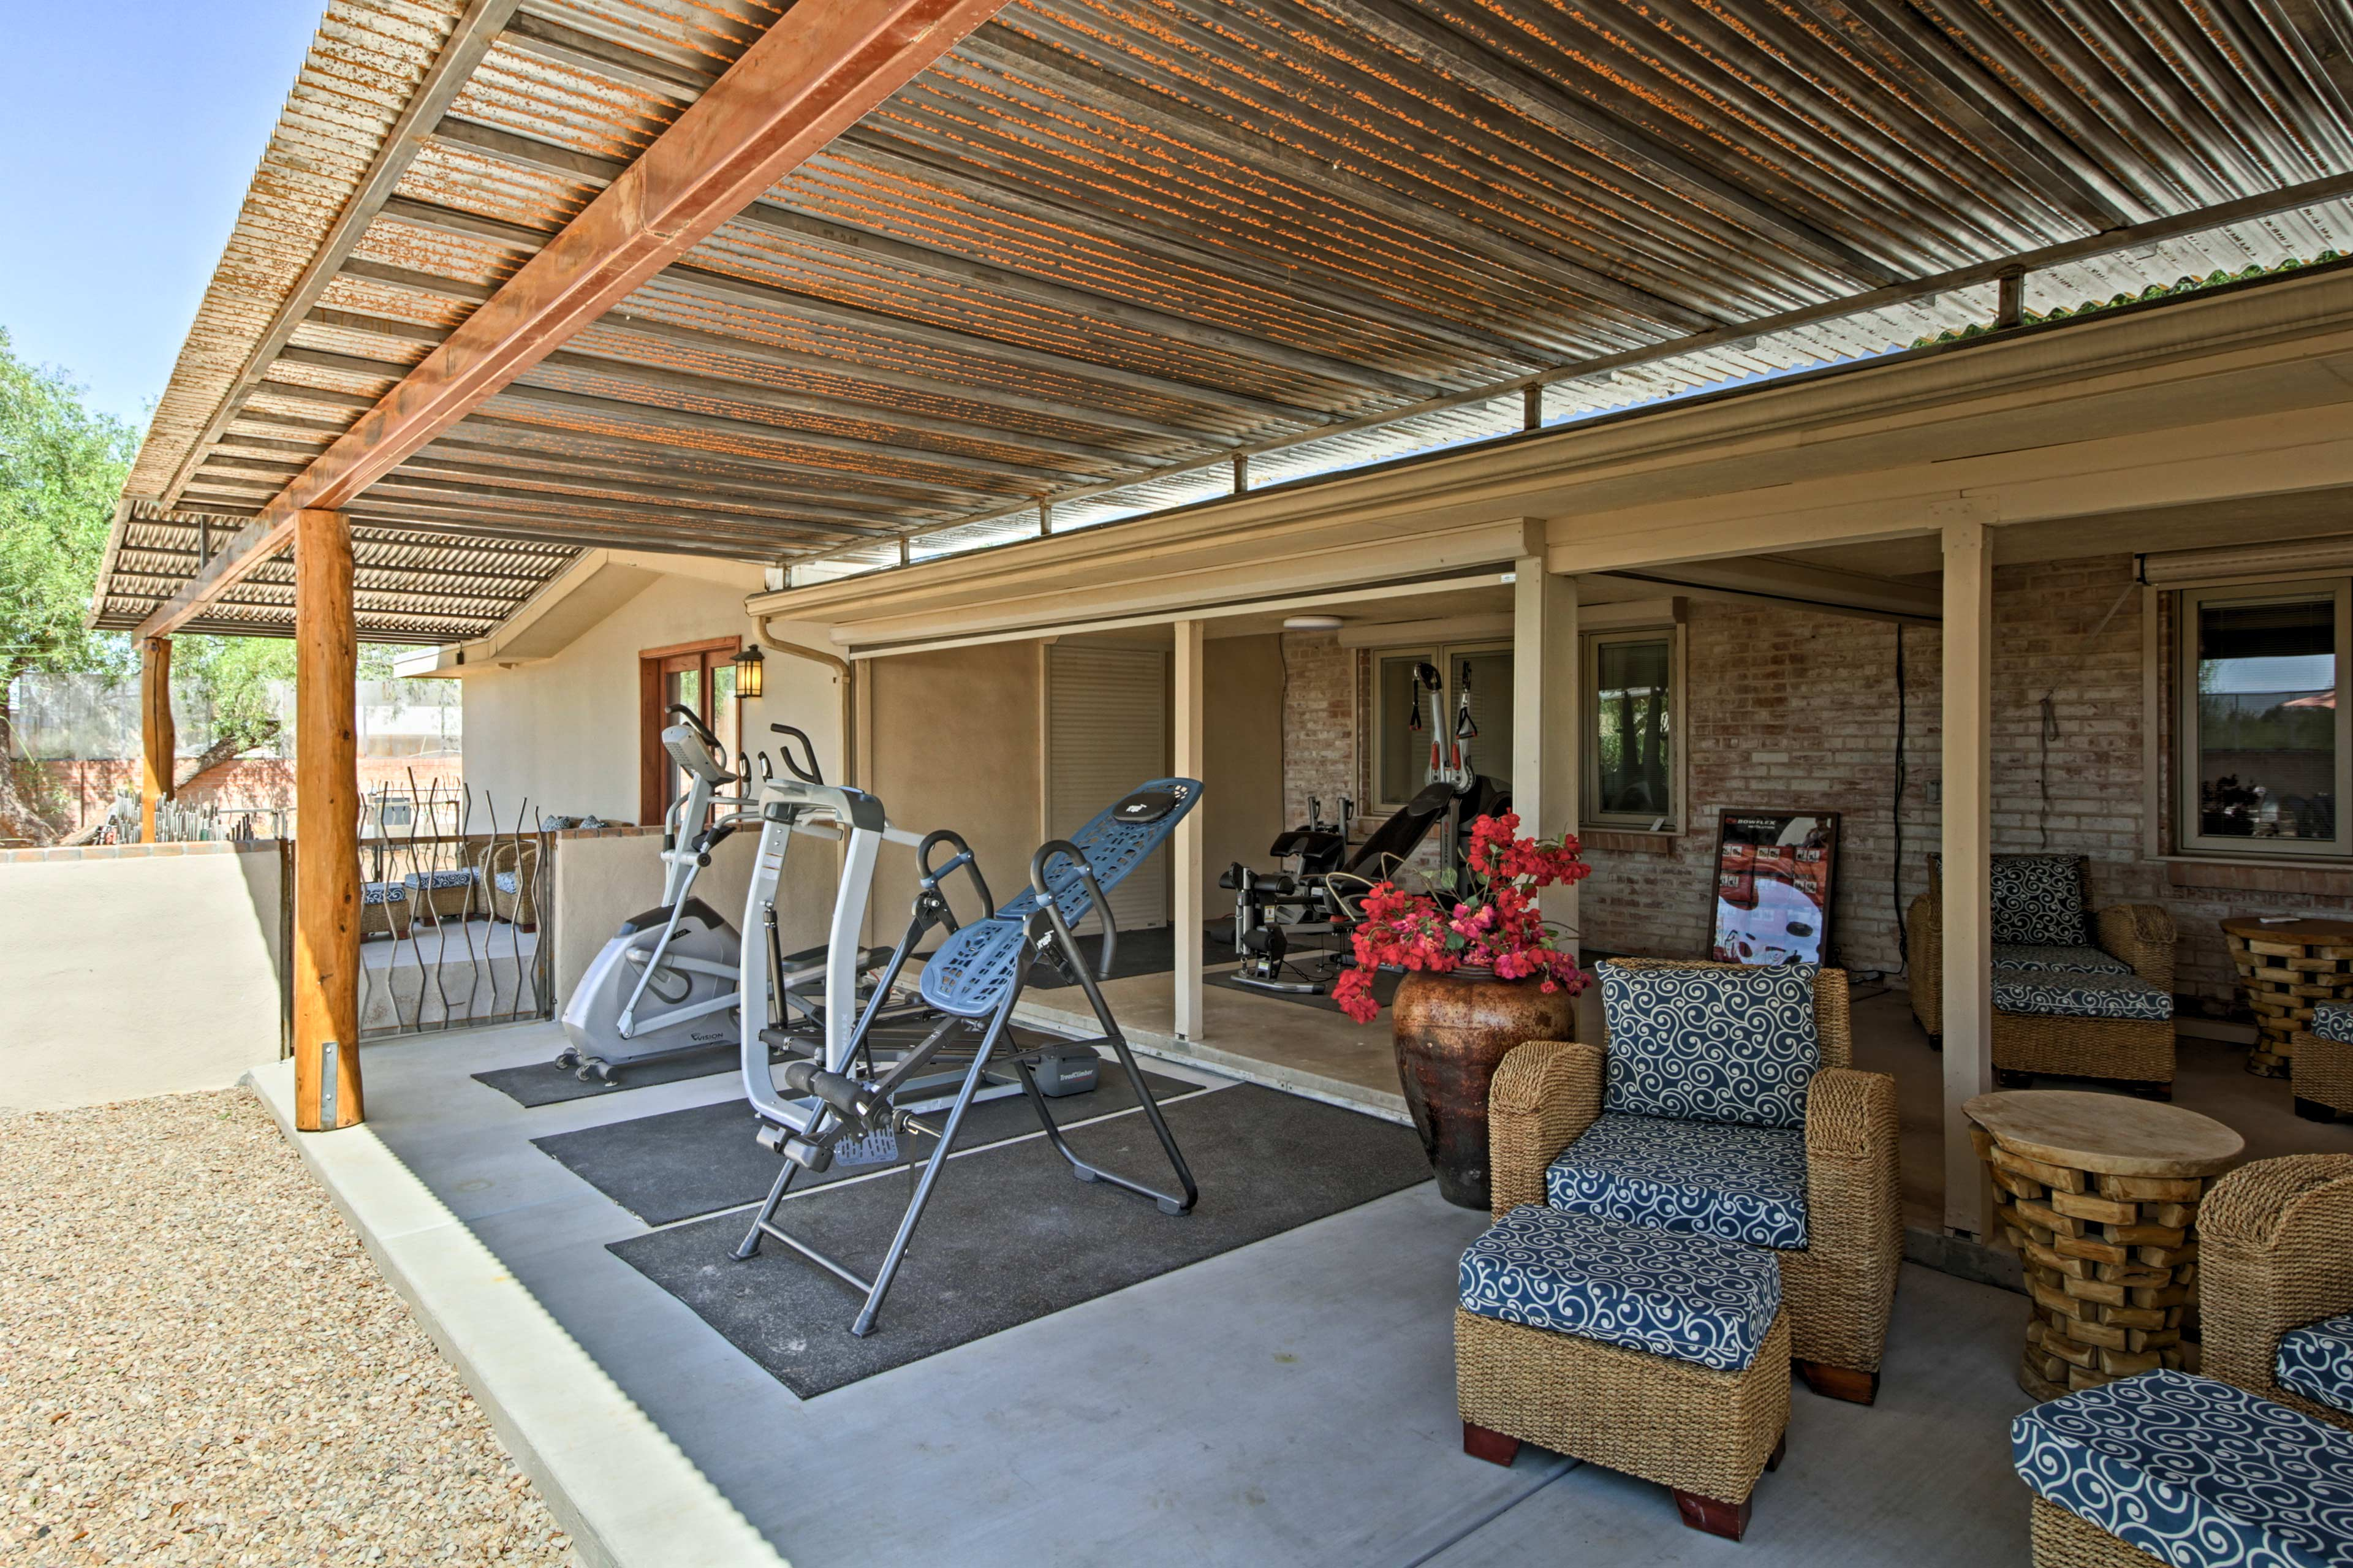 Relax under the shared patio.